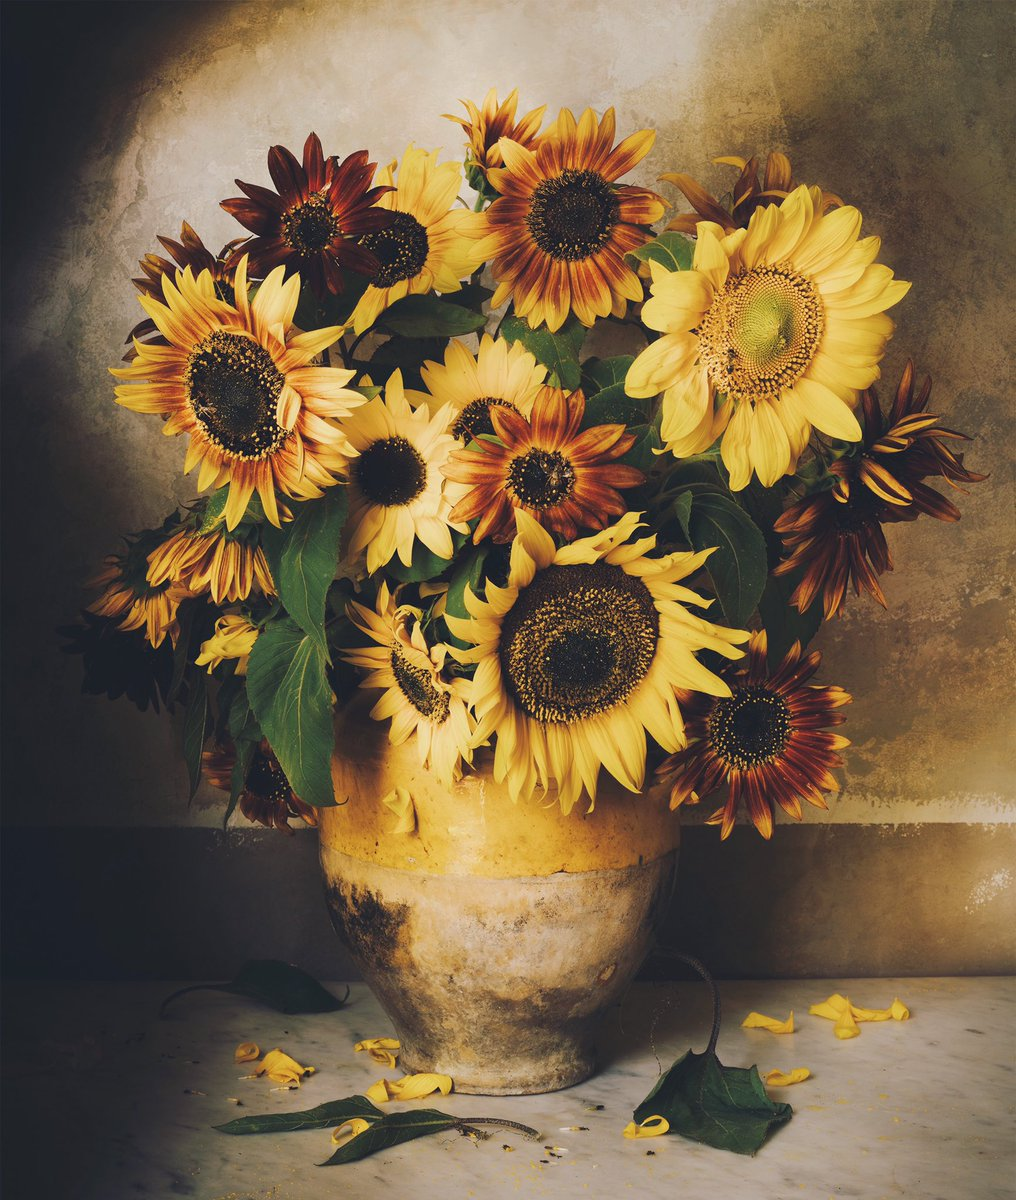 Coustellet market sunflowers https://t.co/8AXIUhGl6s